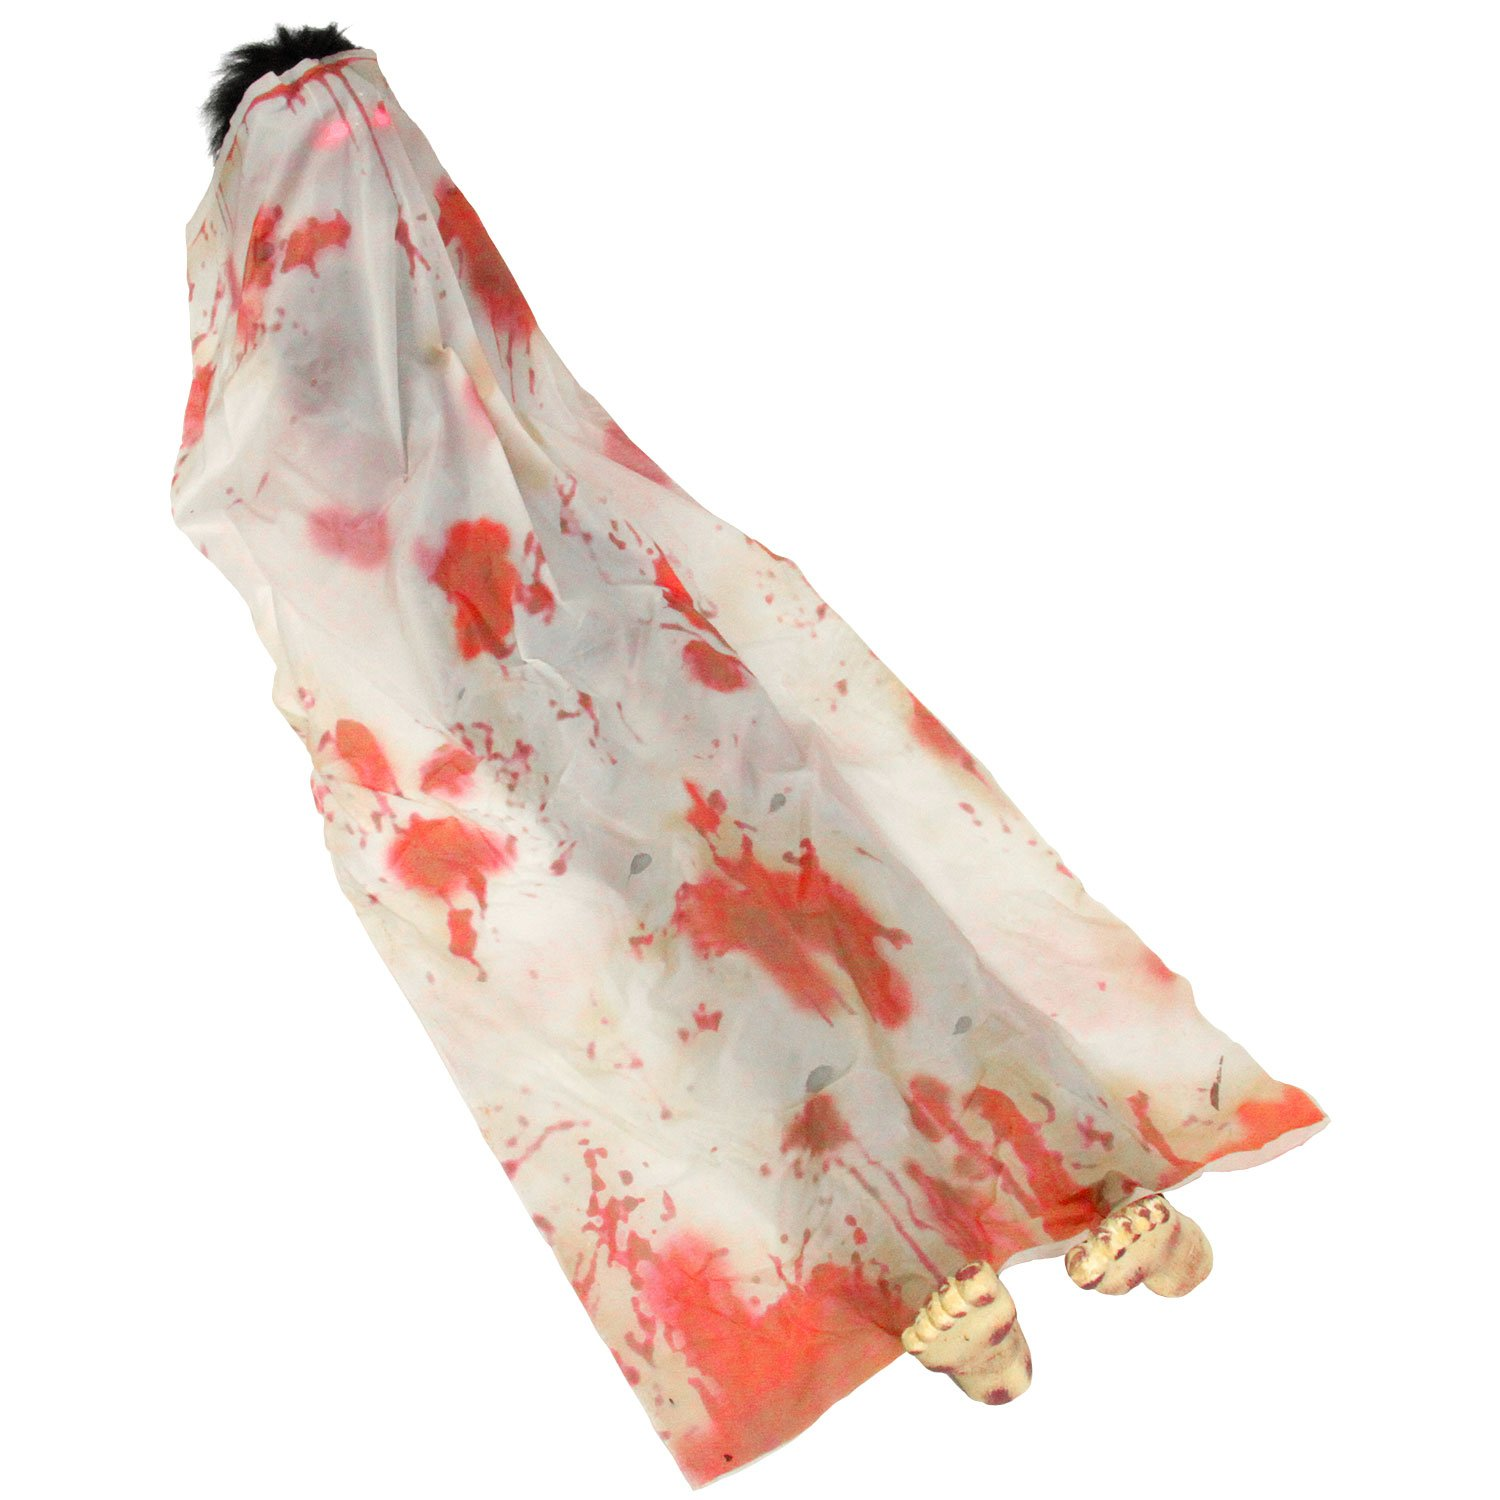 Halloween Haunters 6 Foot Animated Bloody Death Bed, John Doe Corpse Dead Man Body Bag Prop Decoration - Zombie Rises Up from The Dead - Graveyard, Cemetery, Haunted House Display - Battery Operated